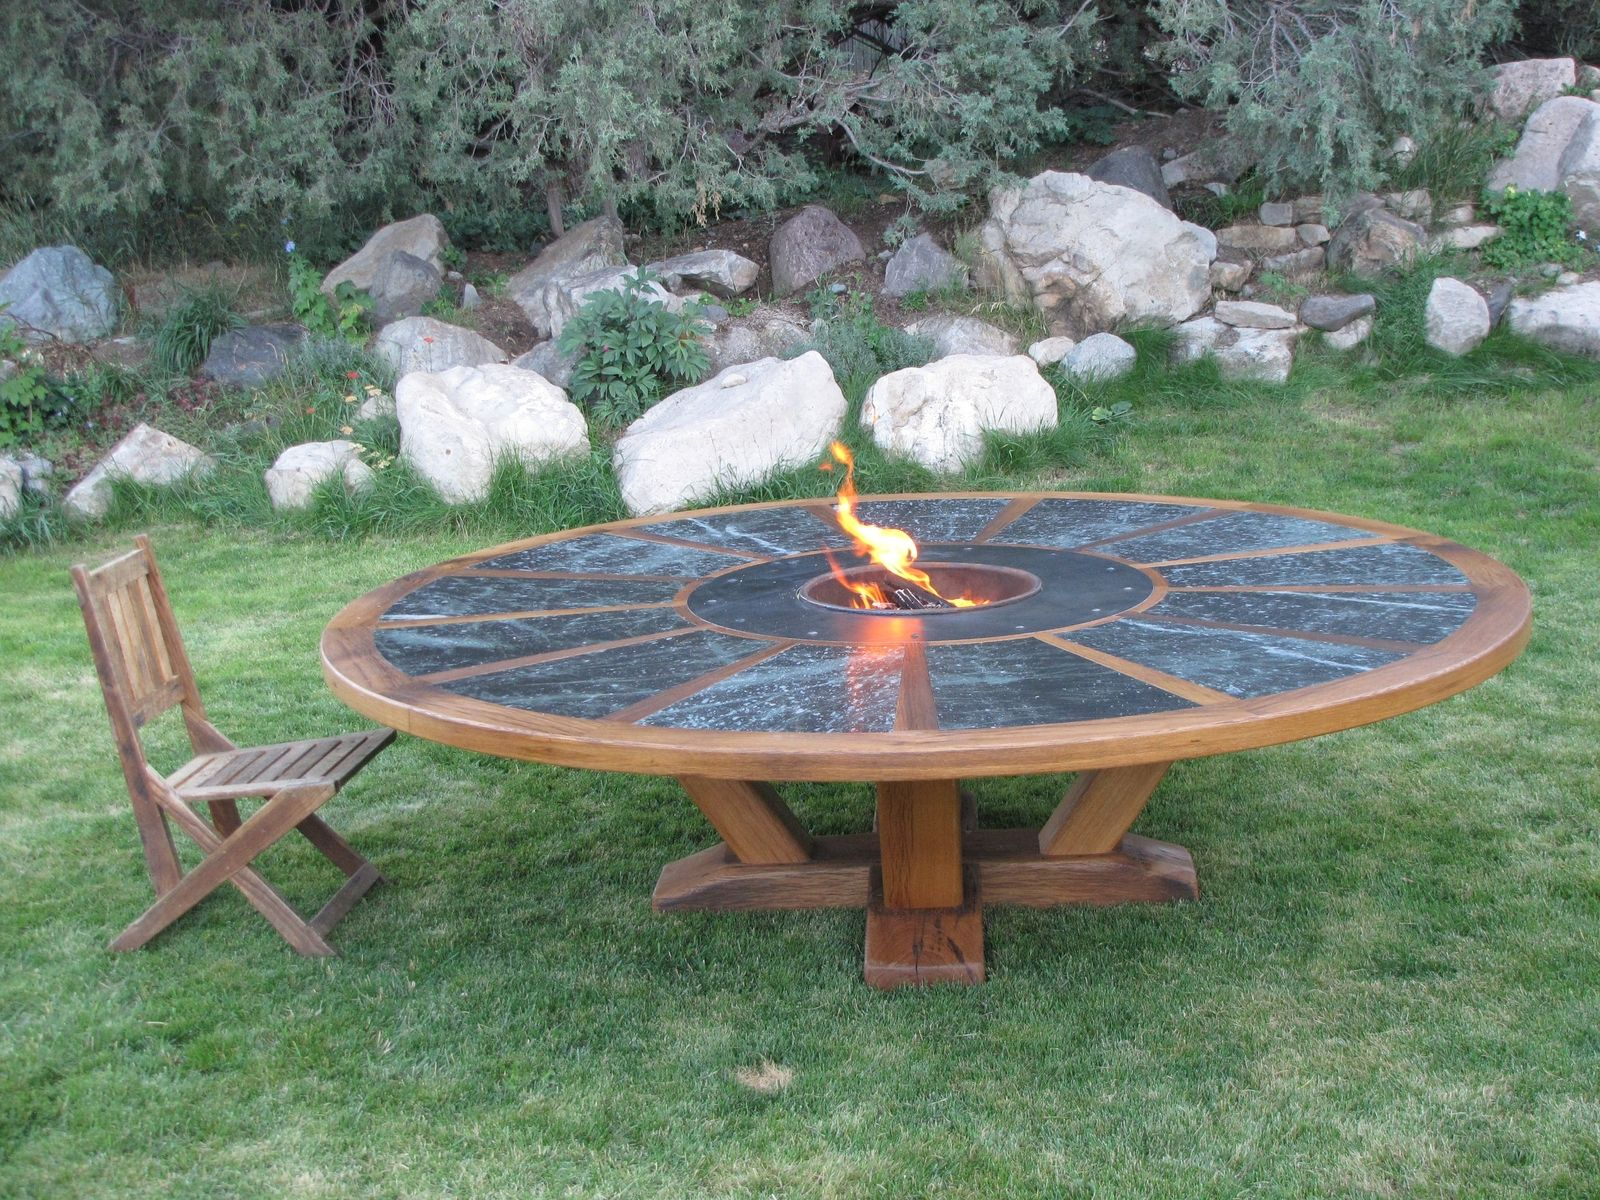 Hand Made 9 Round Table With Fire Pit In The Middle By